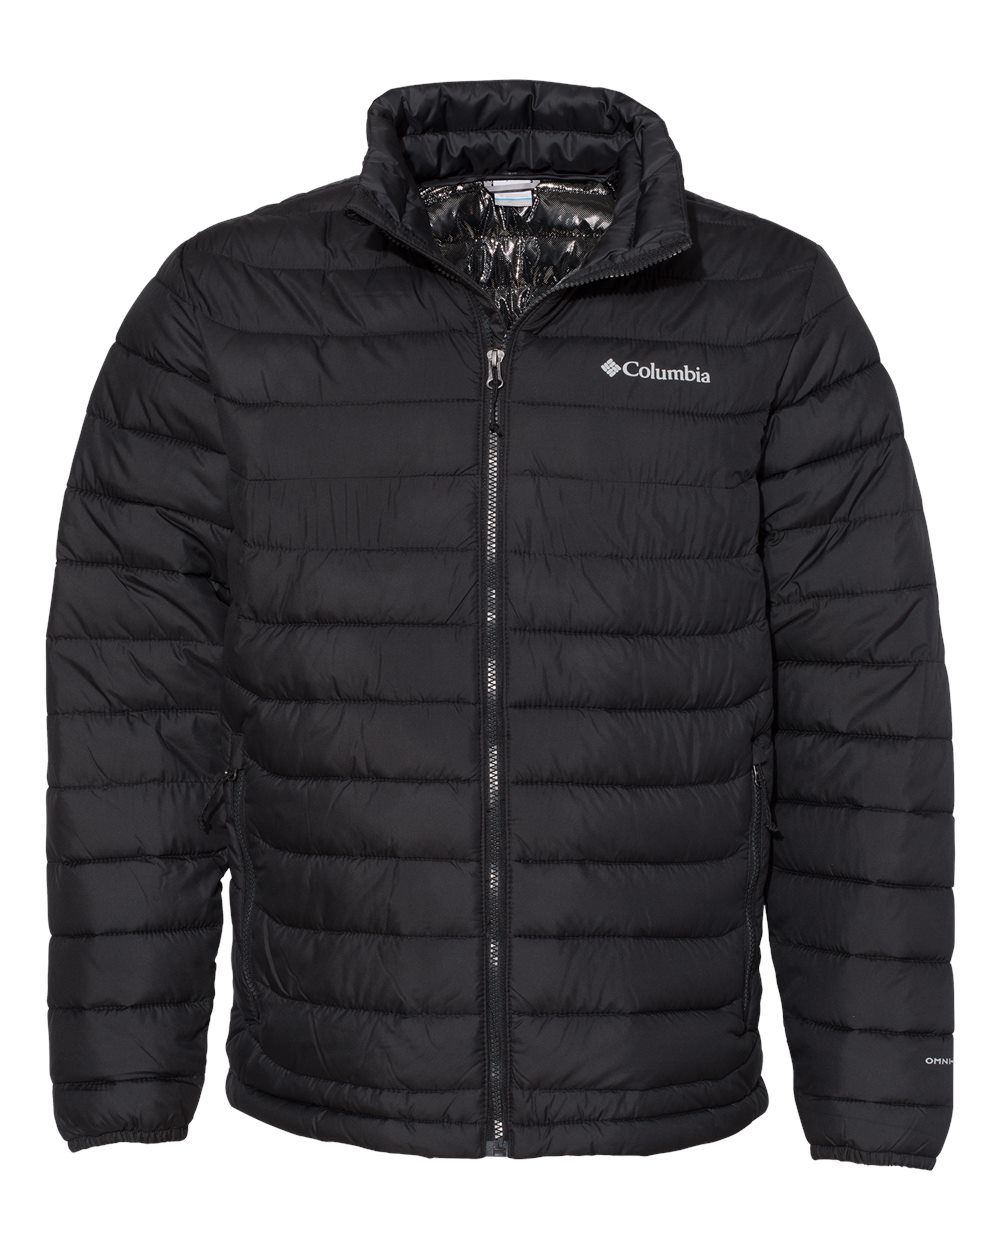 Columbia 169800 - Powder Lite Jacket